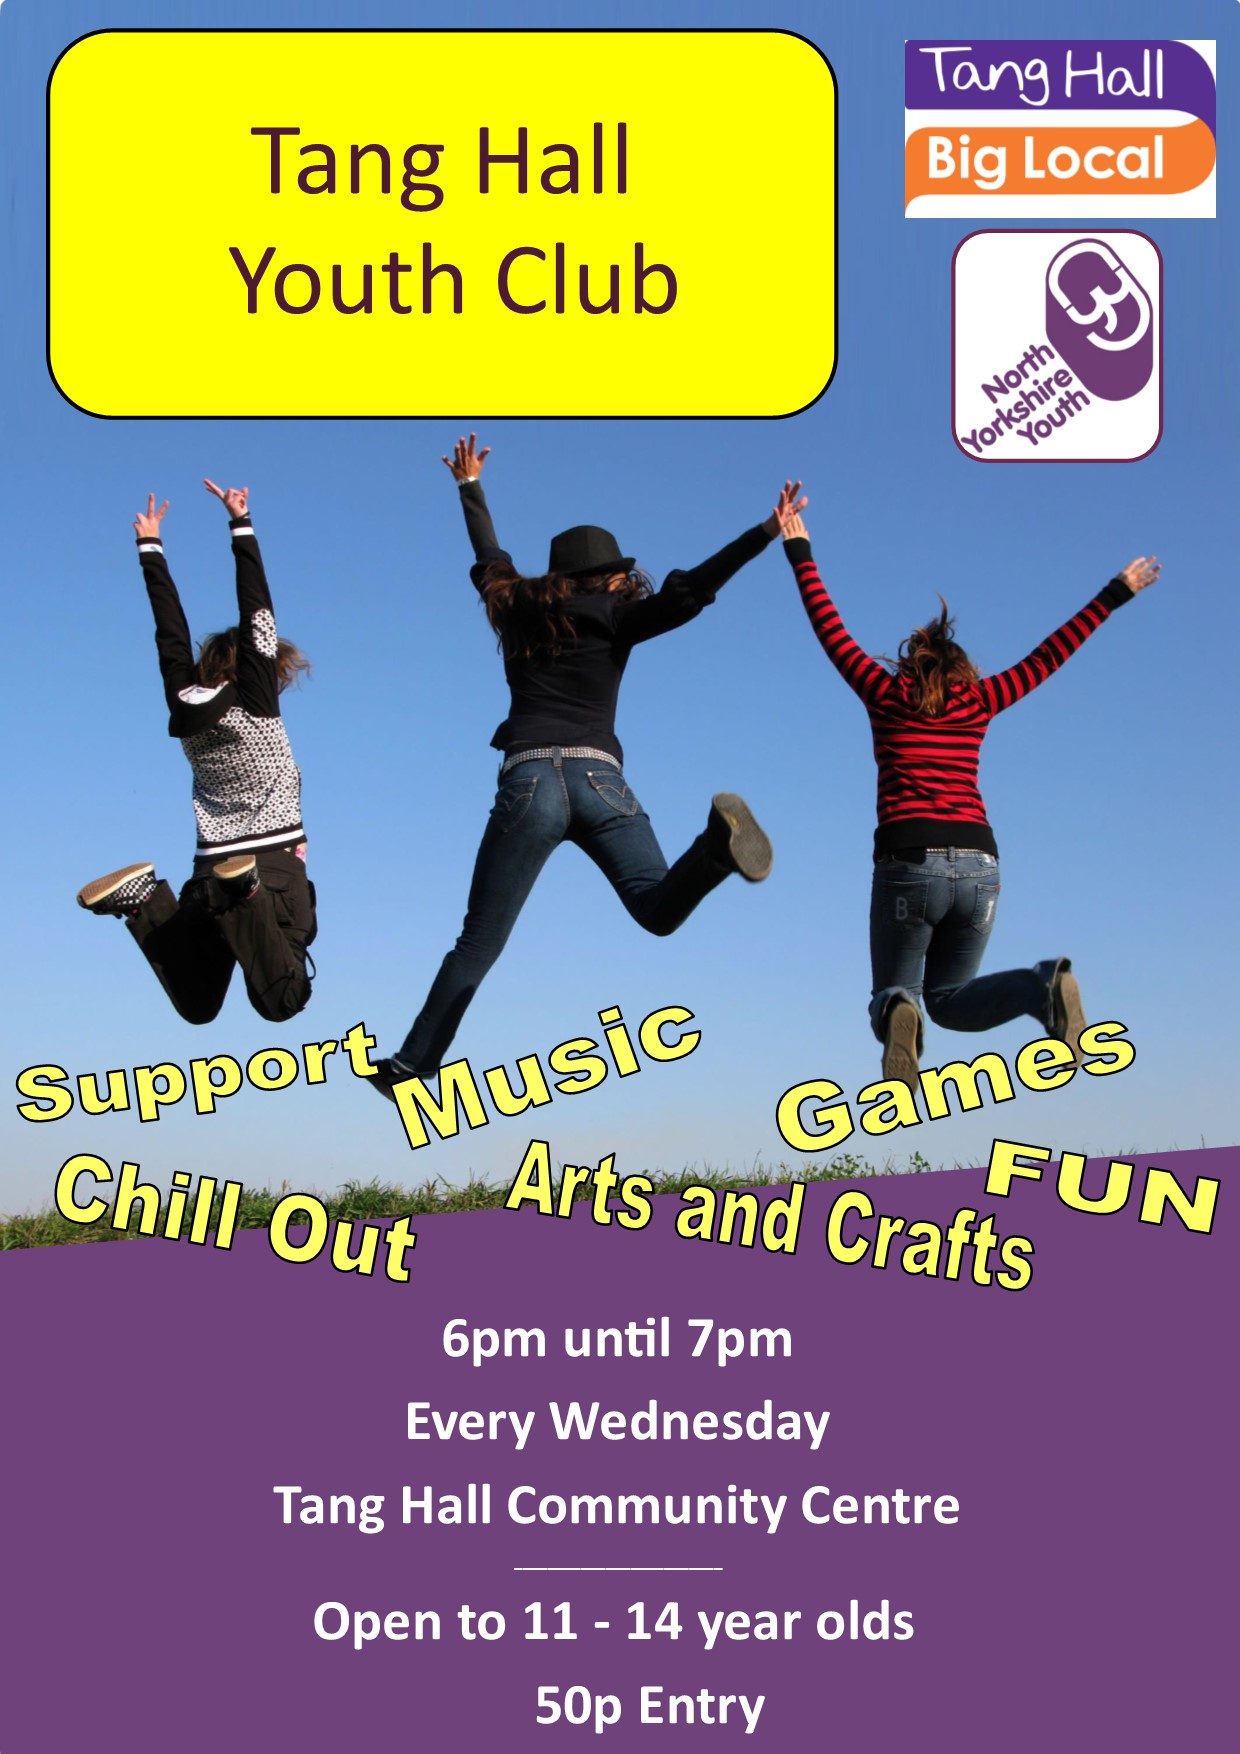 TH Youth Club